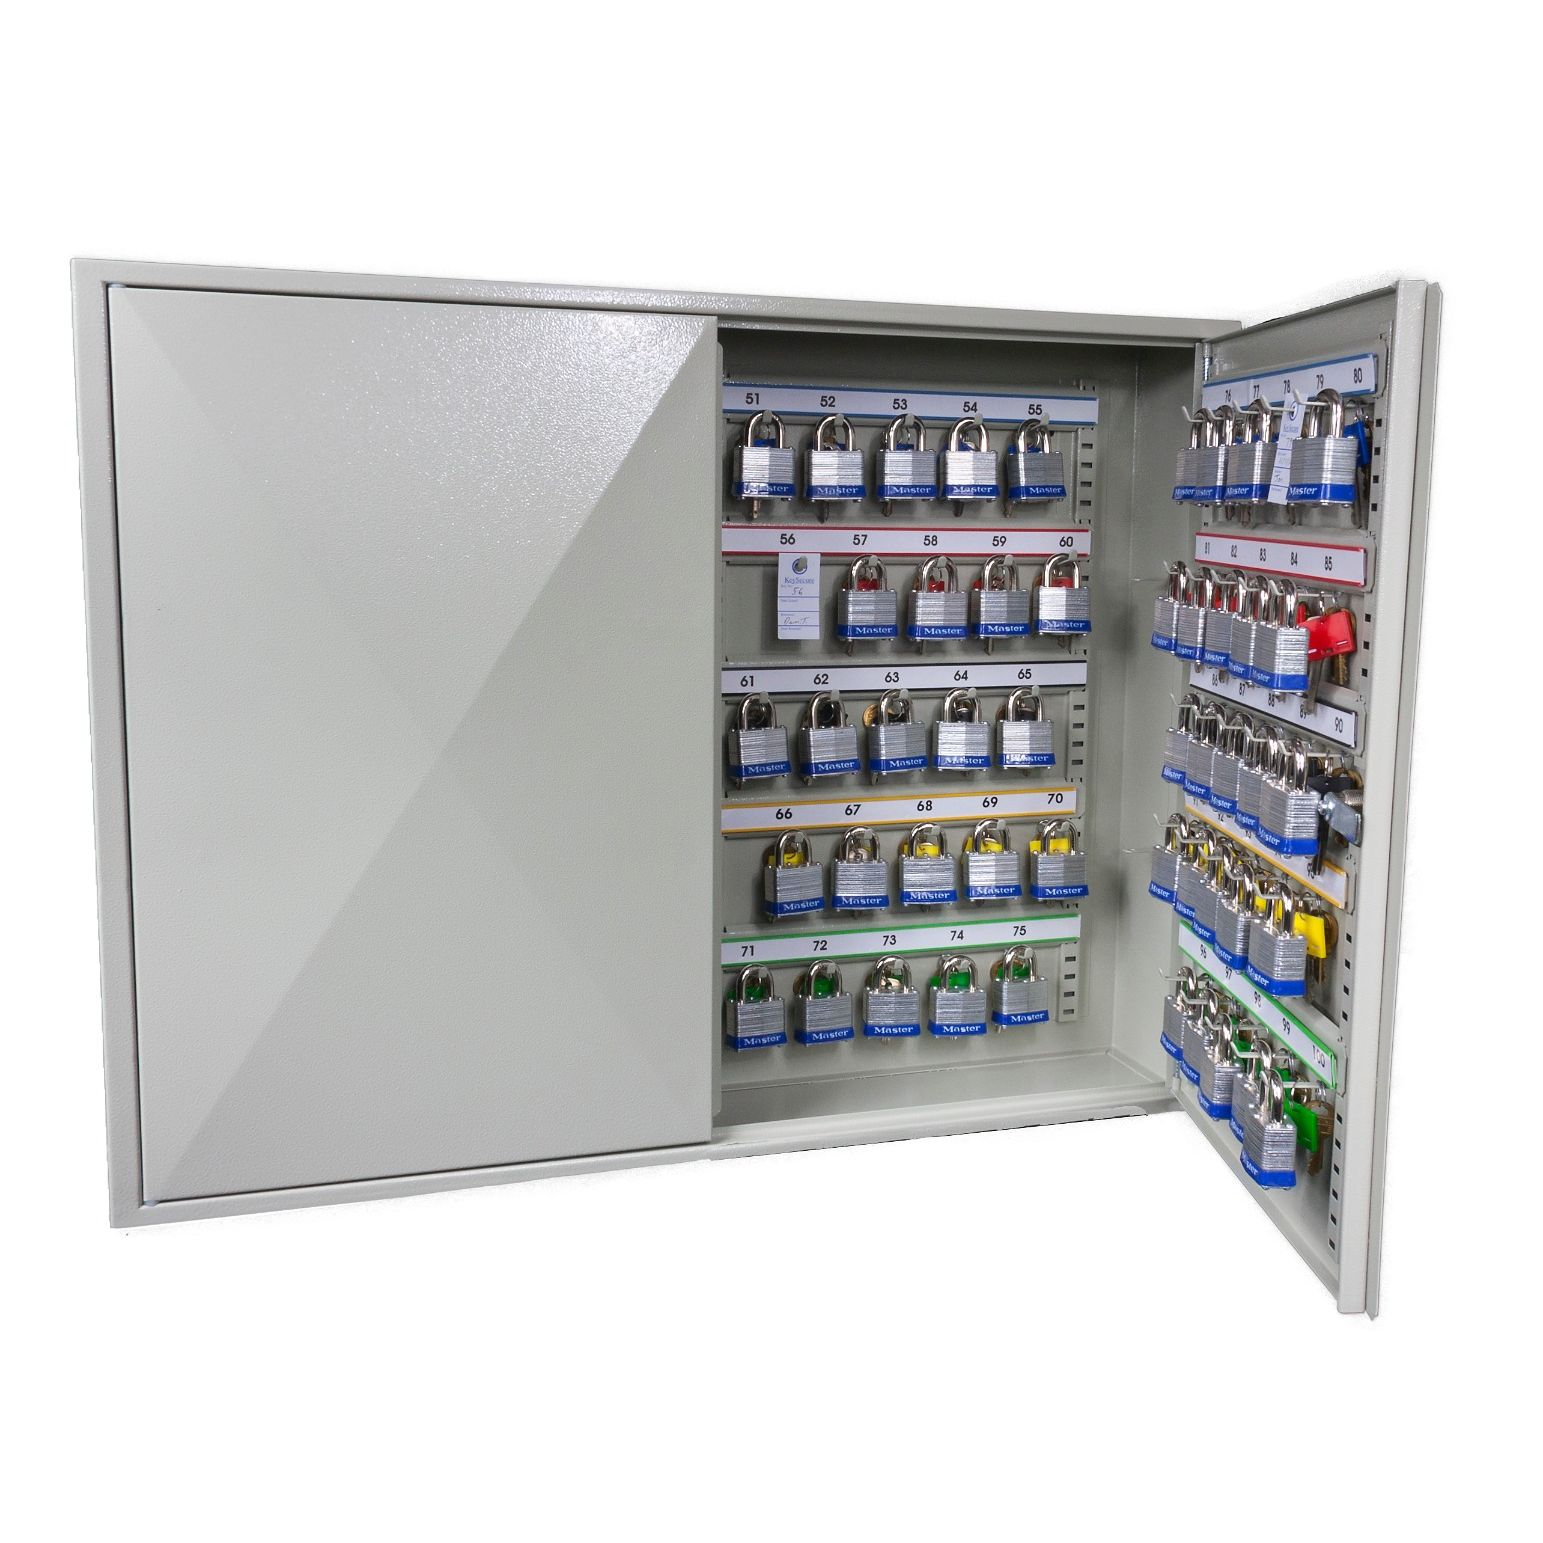 high_capacity_key_cabinets_with_electronic_cam_lock_100_hook_open.jpg